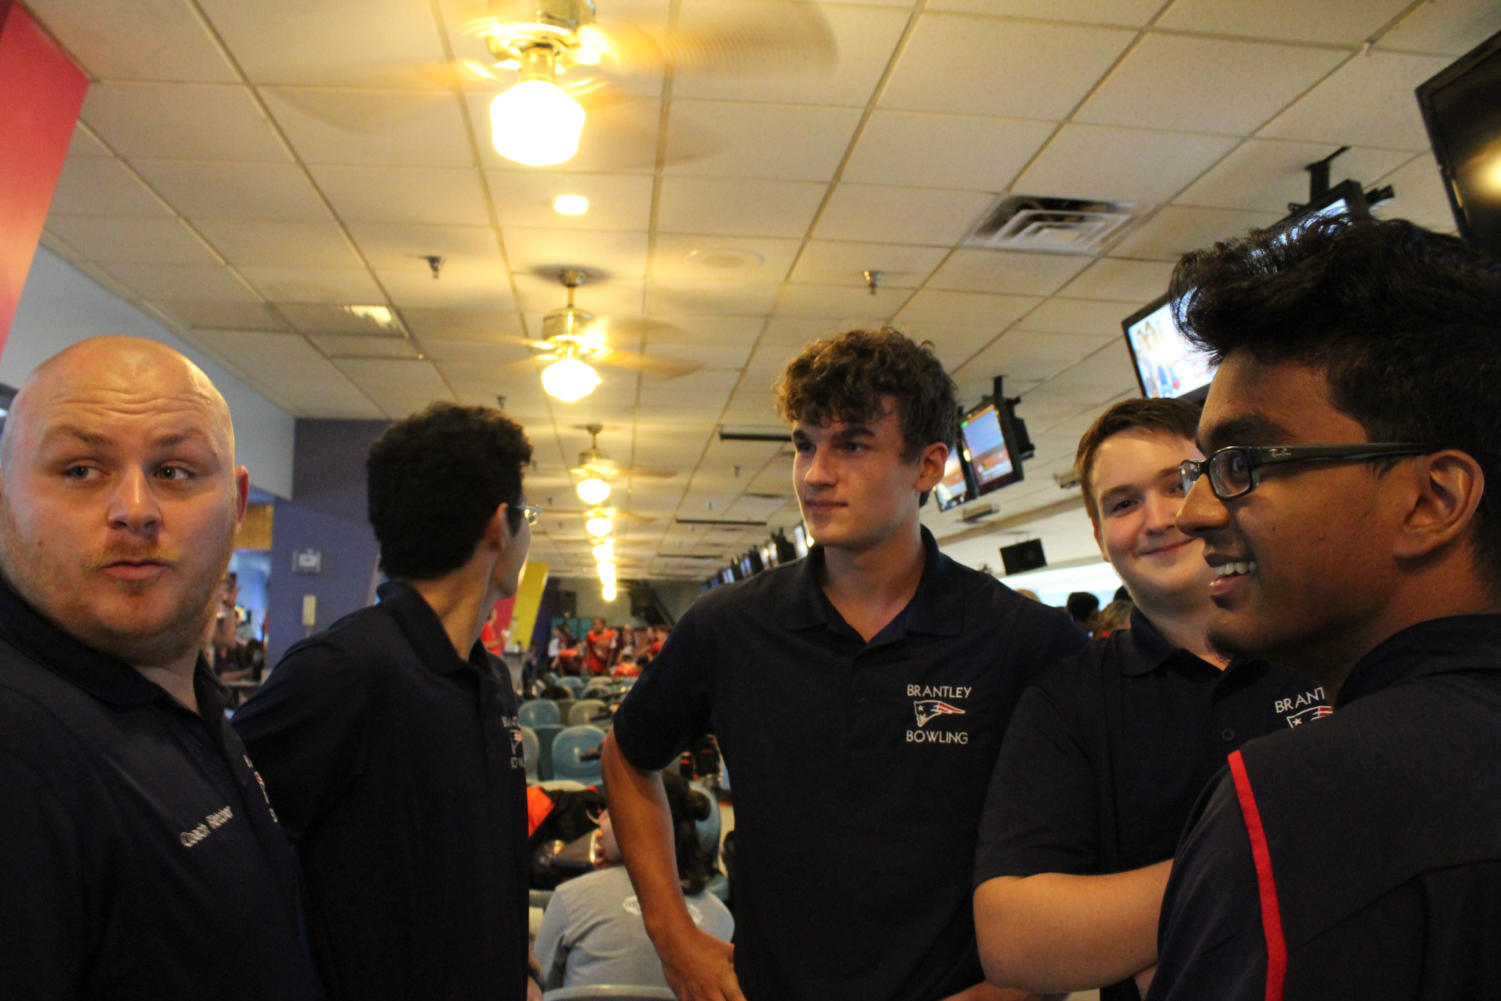 The+boys+bowling+team+and+Coach+Gary+Fletcher+meets+to+discuss+strategy+before+the+tournament+begins+on+Monday%2C+August+27.+The+team+about+30+minutes+of+practice+time+to+warm+up+before+the+game.